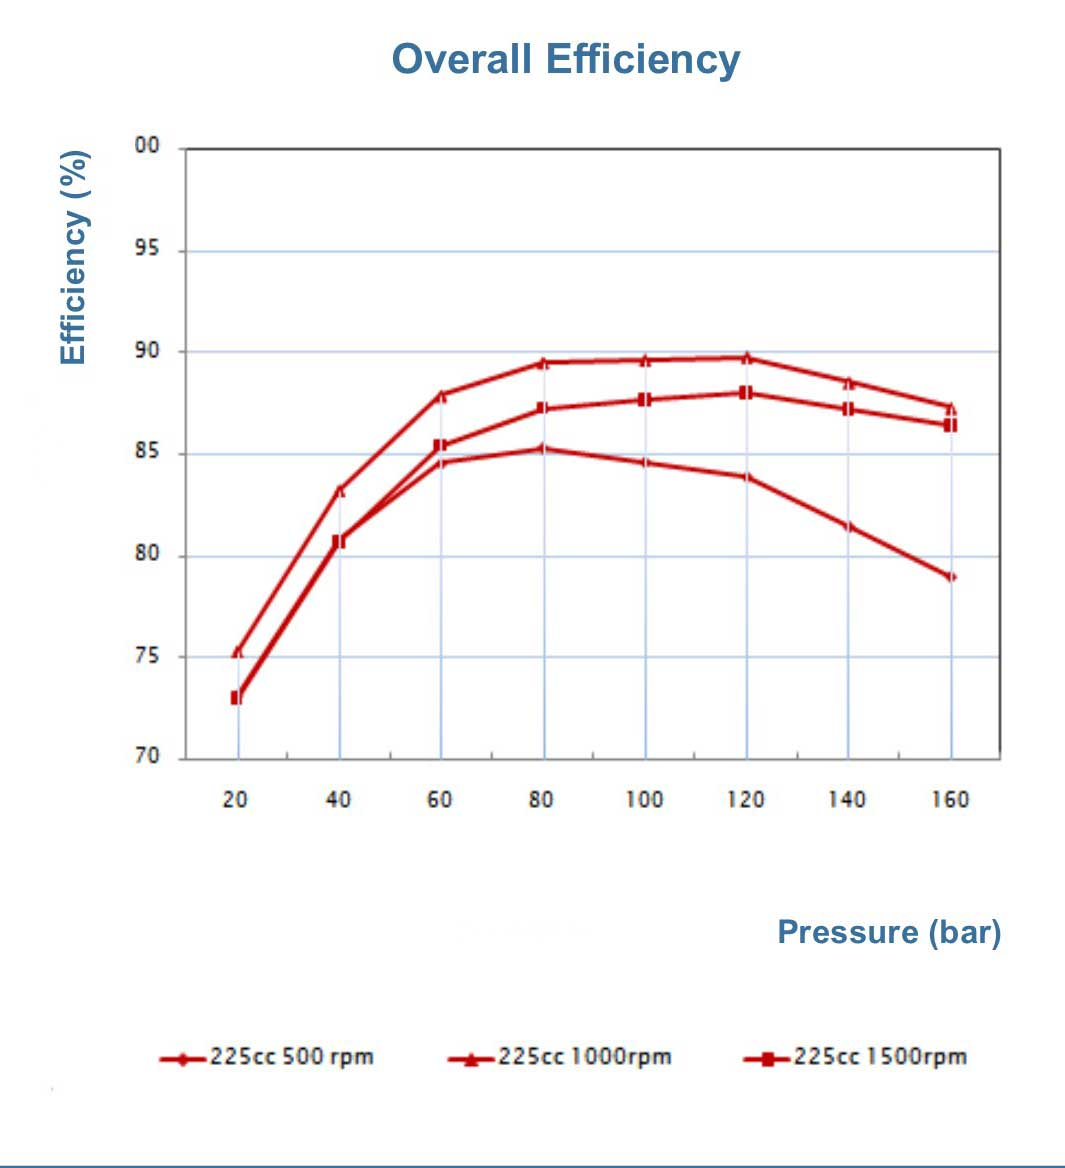 p180-overall-efficency